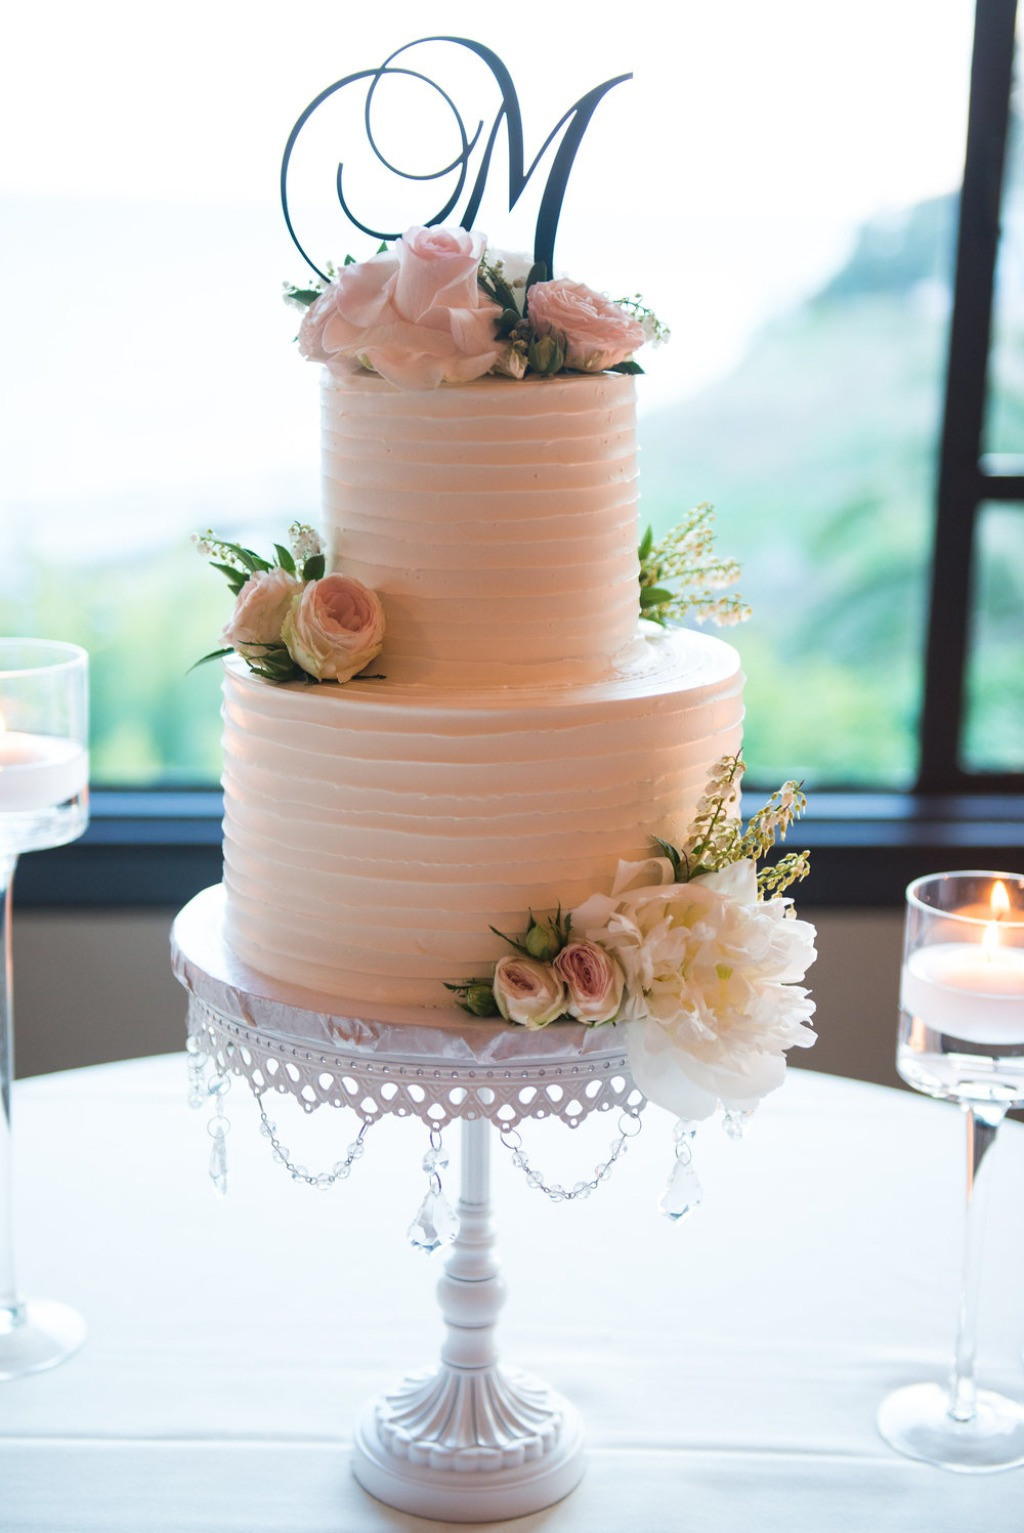 Wedding Cake with a view! Opulent Treasures Cake Stands will spotlight your sweet celebration! We offer a gorgeous selection of cake